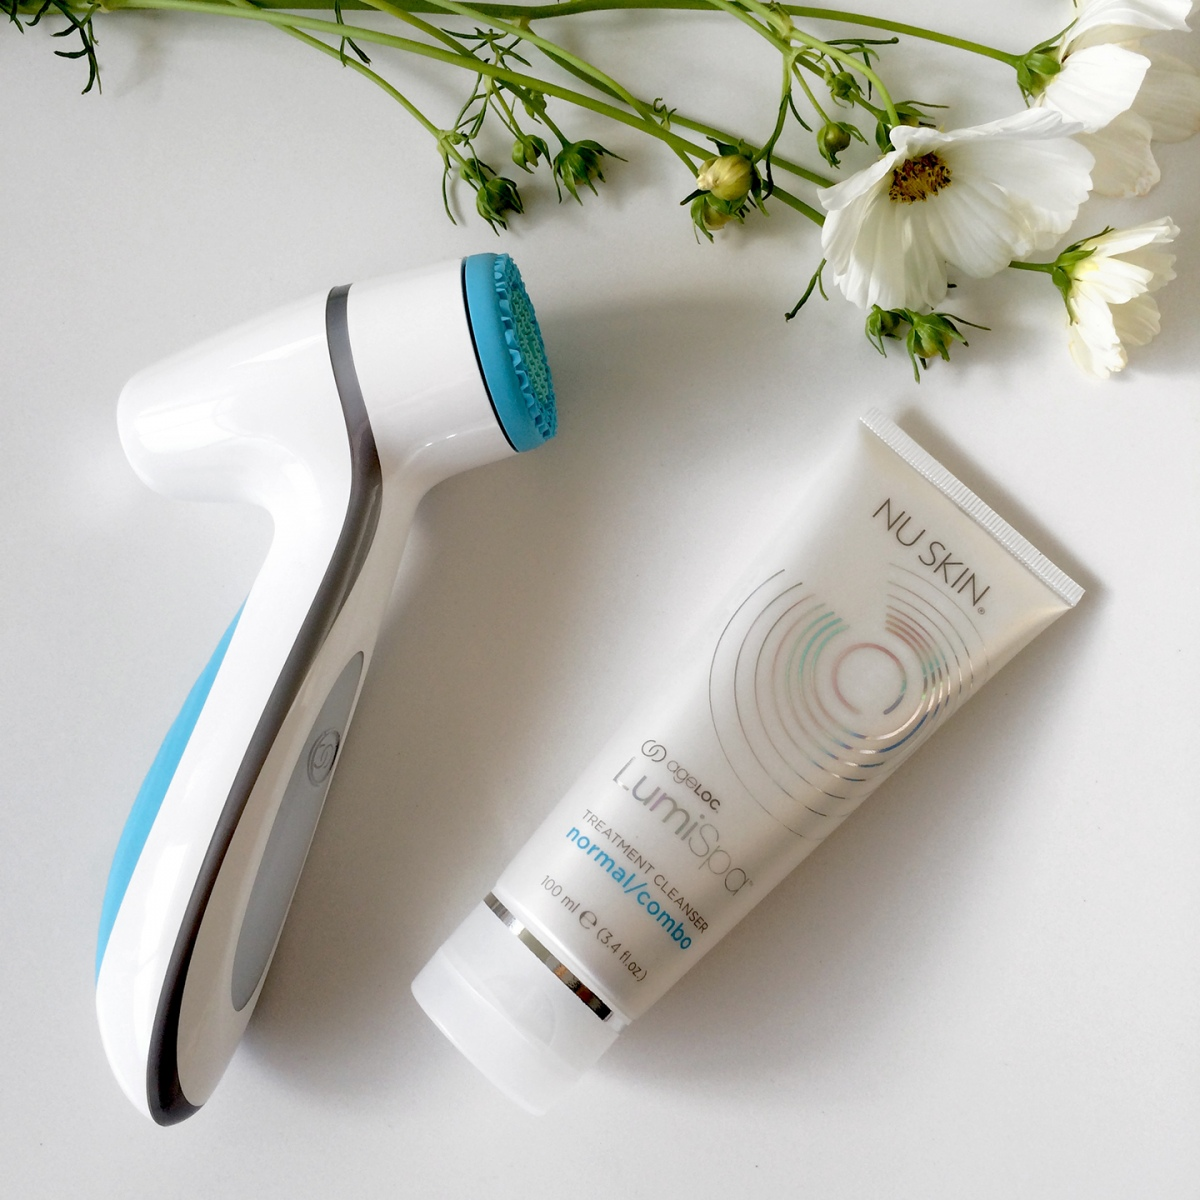 LumiSpa device and cleanser on a white surface with white wild flowers.